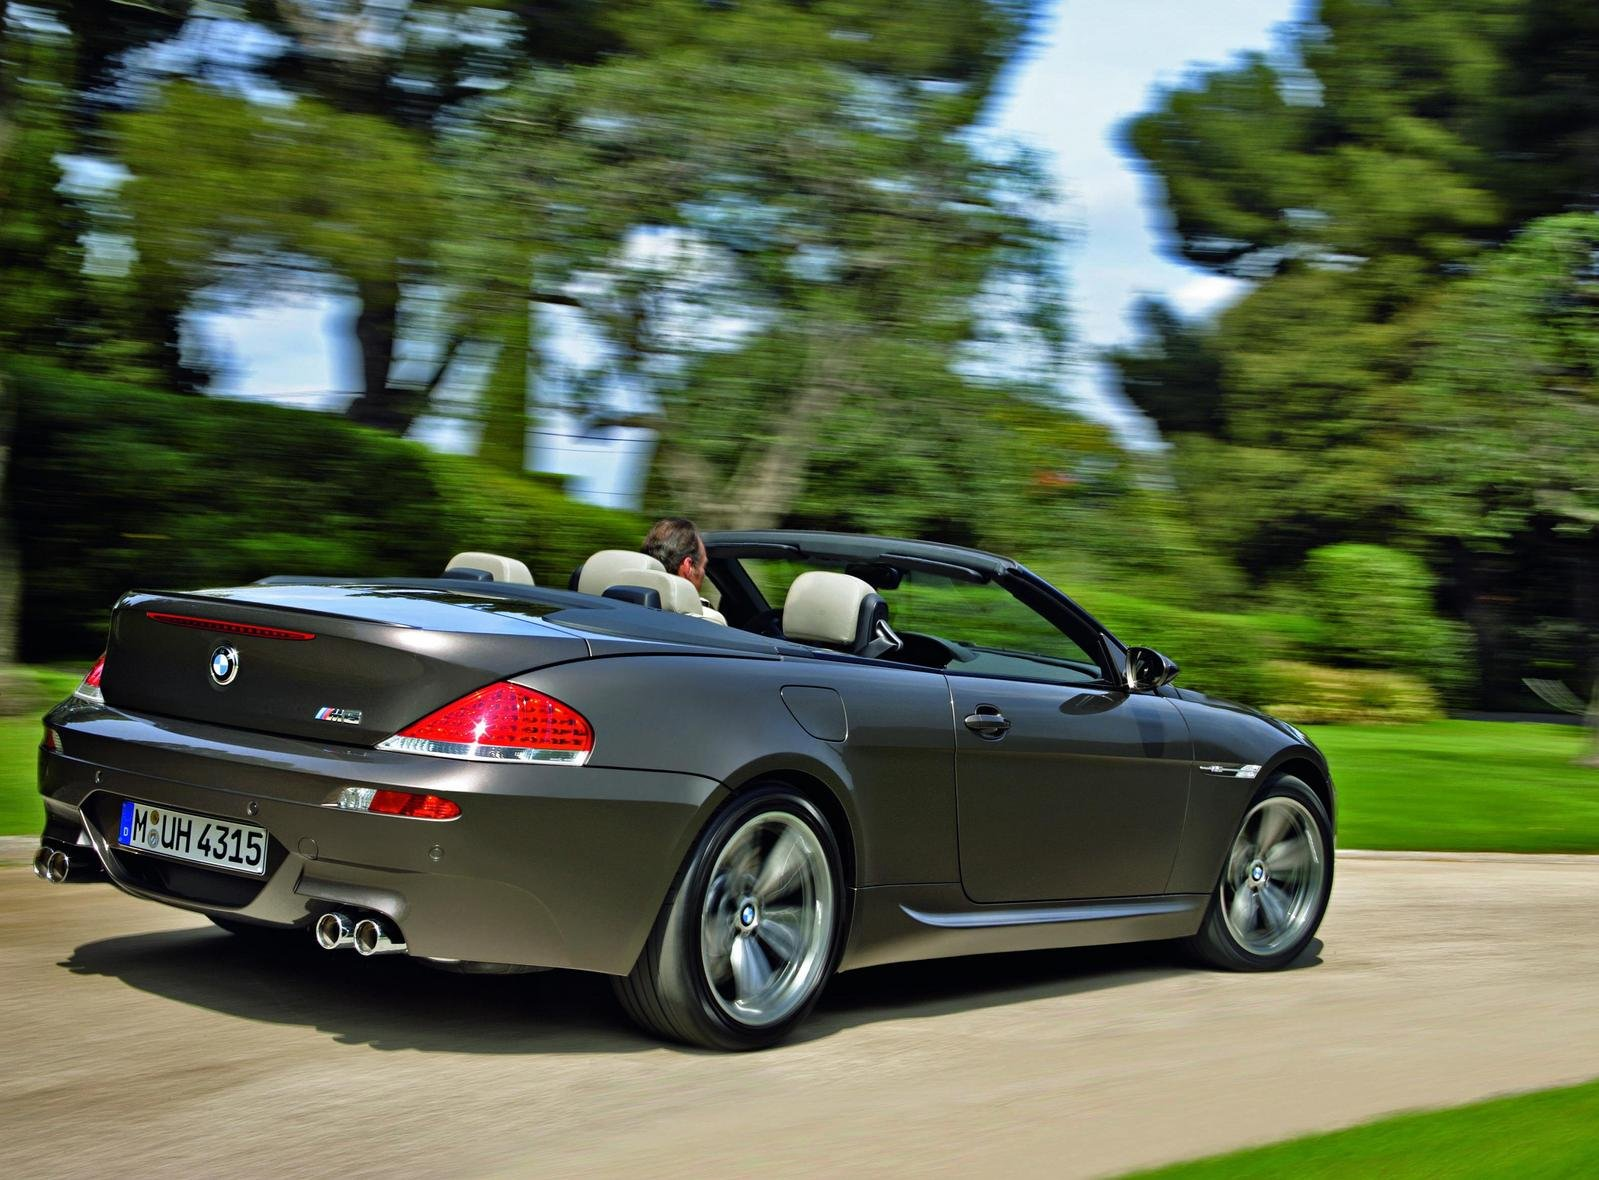 2007 bmw m6 convertible picture 82414 car review top speed. Black Bedroom Furniture Sets. Home Design Ideas